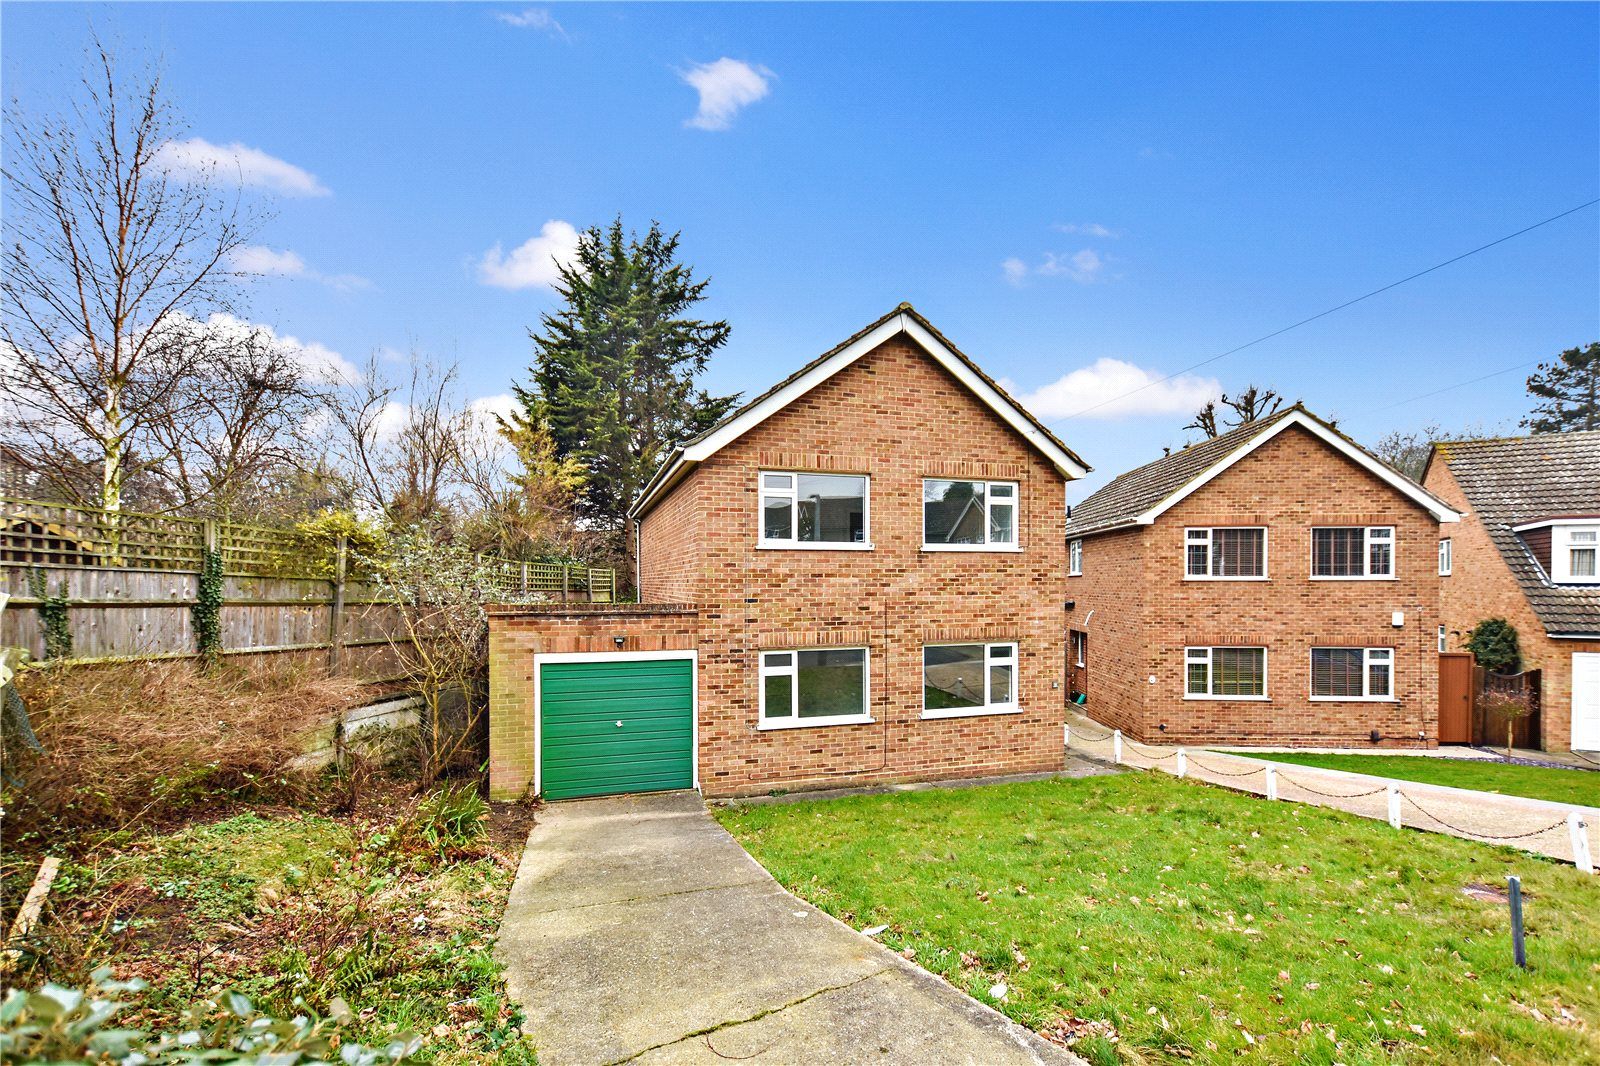 Ridgecroft Close, Bexley, Kent, DA5